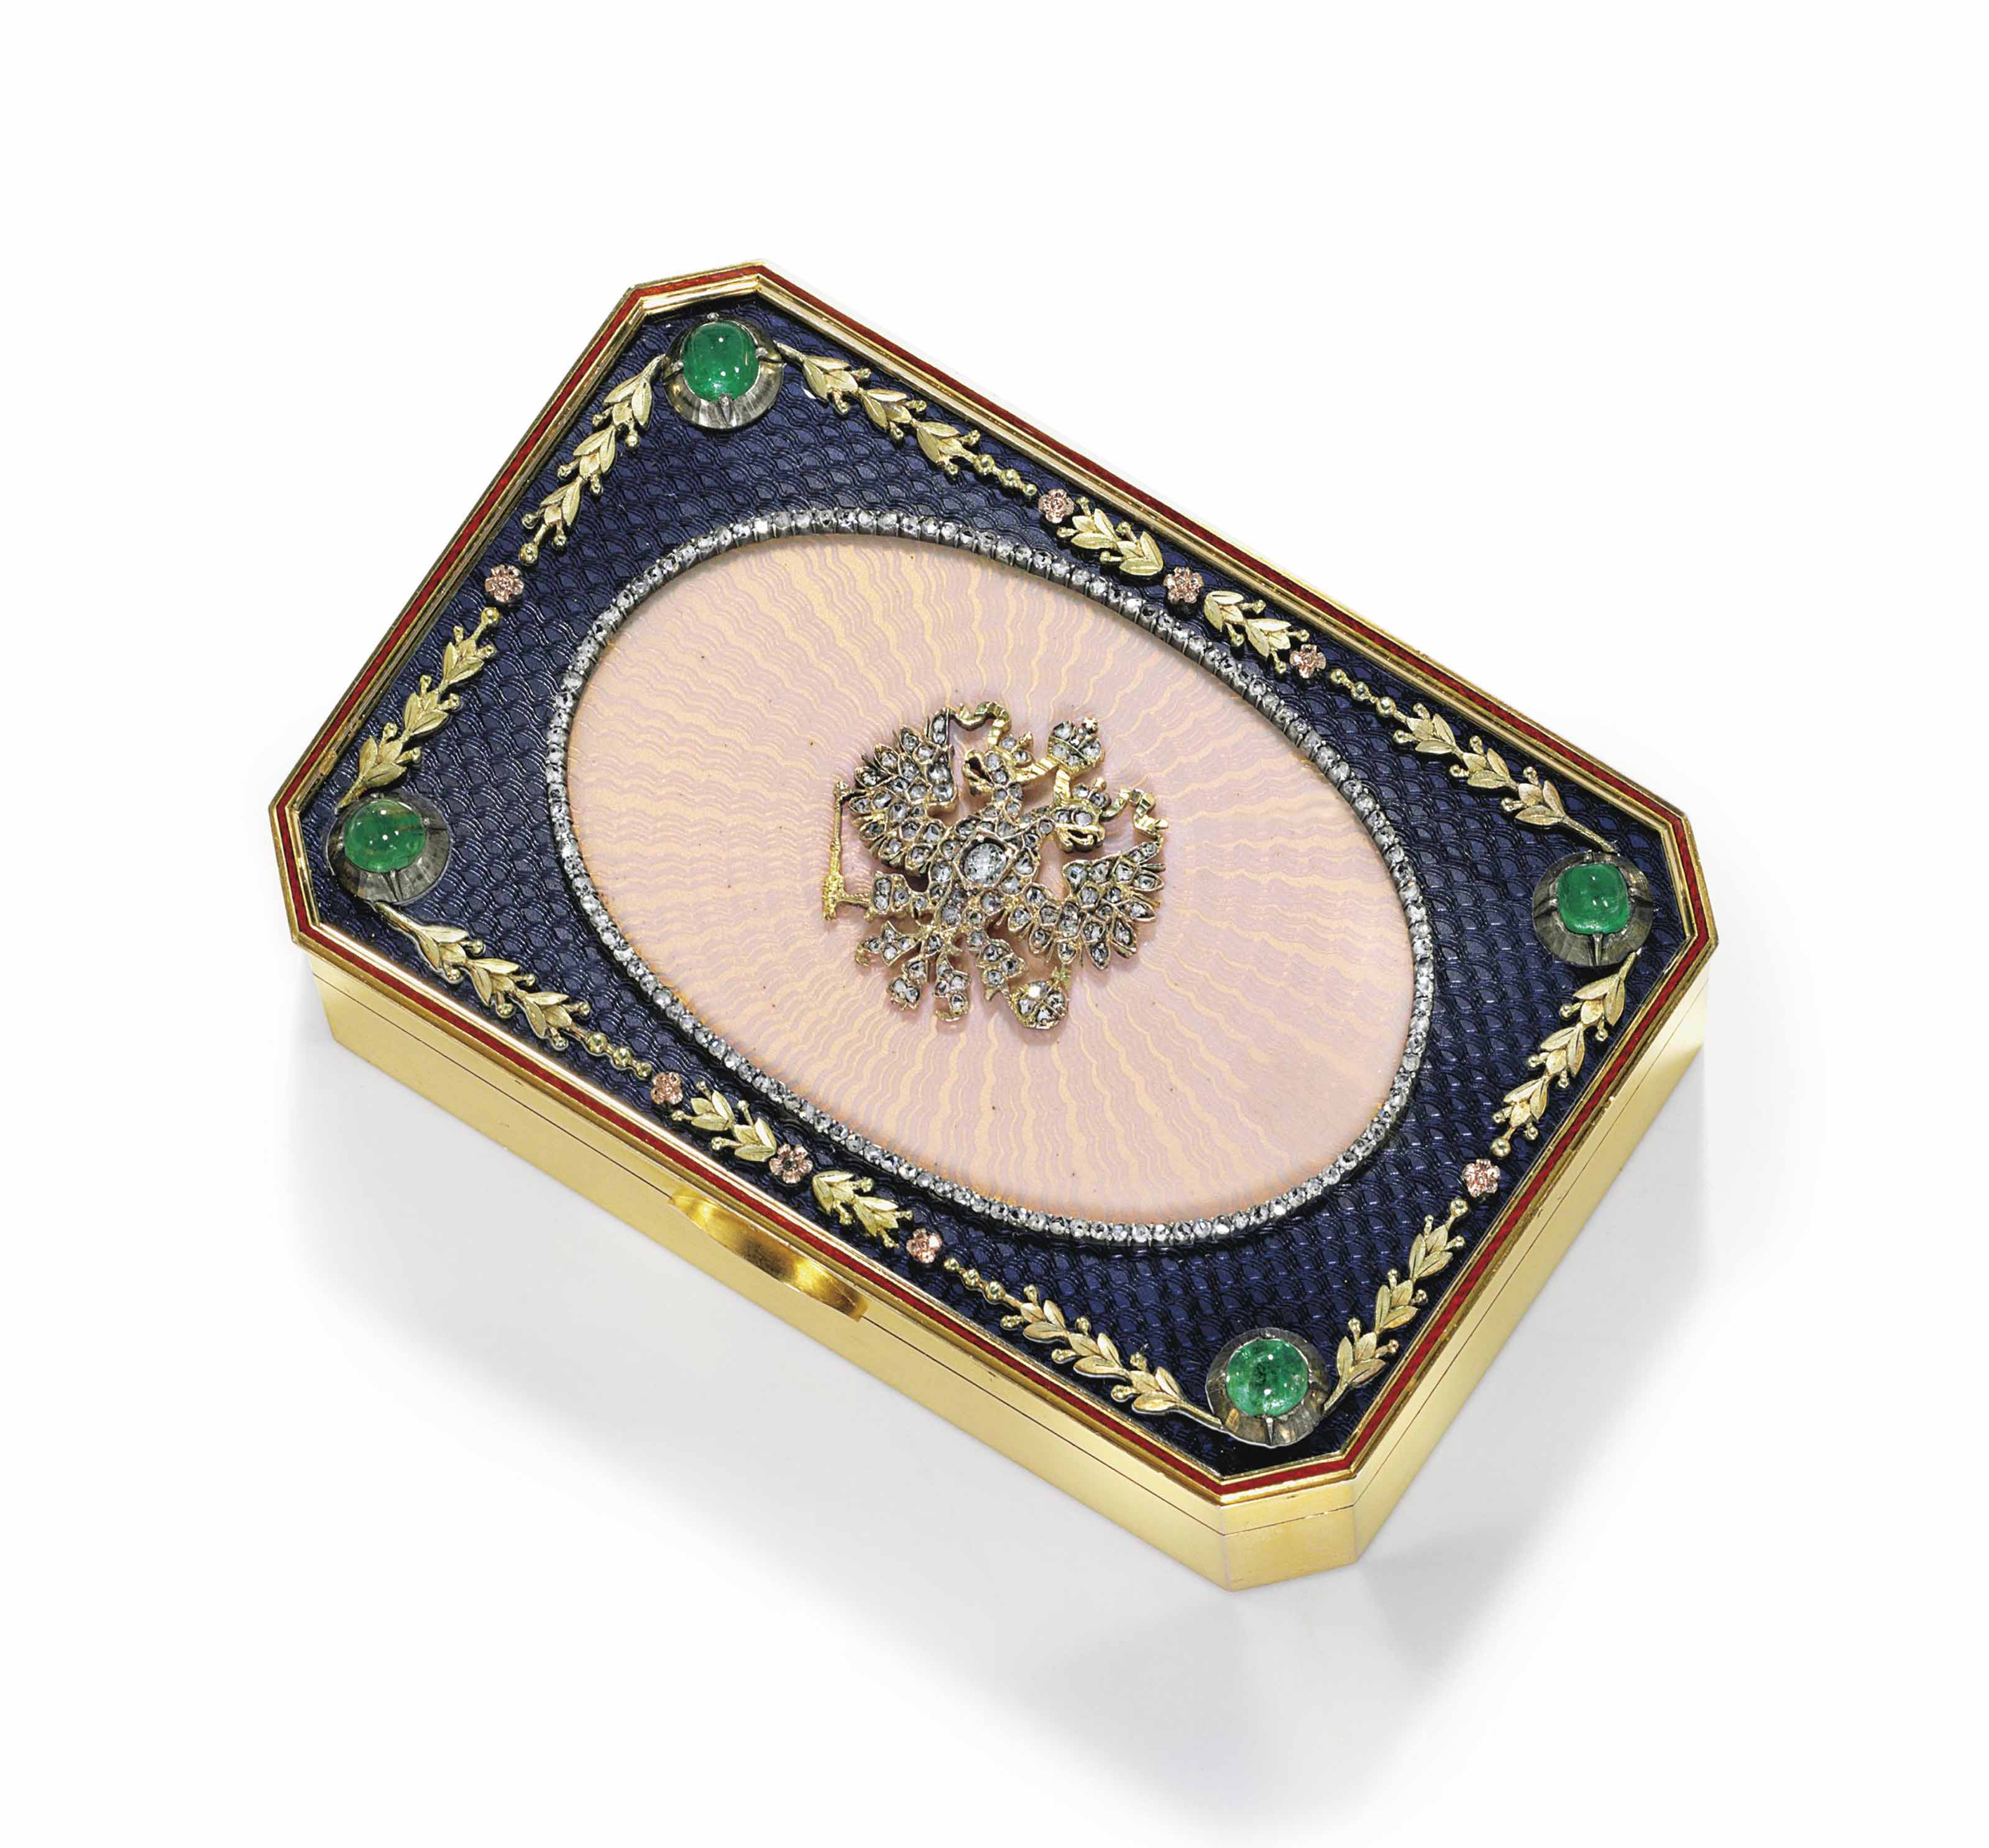 AN IMPORTANT JEWELED AND ENAMELED TWO-COLOR GOLD IMPERIAL PRESENTATION SNUFF BOX